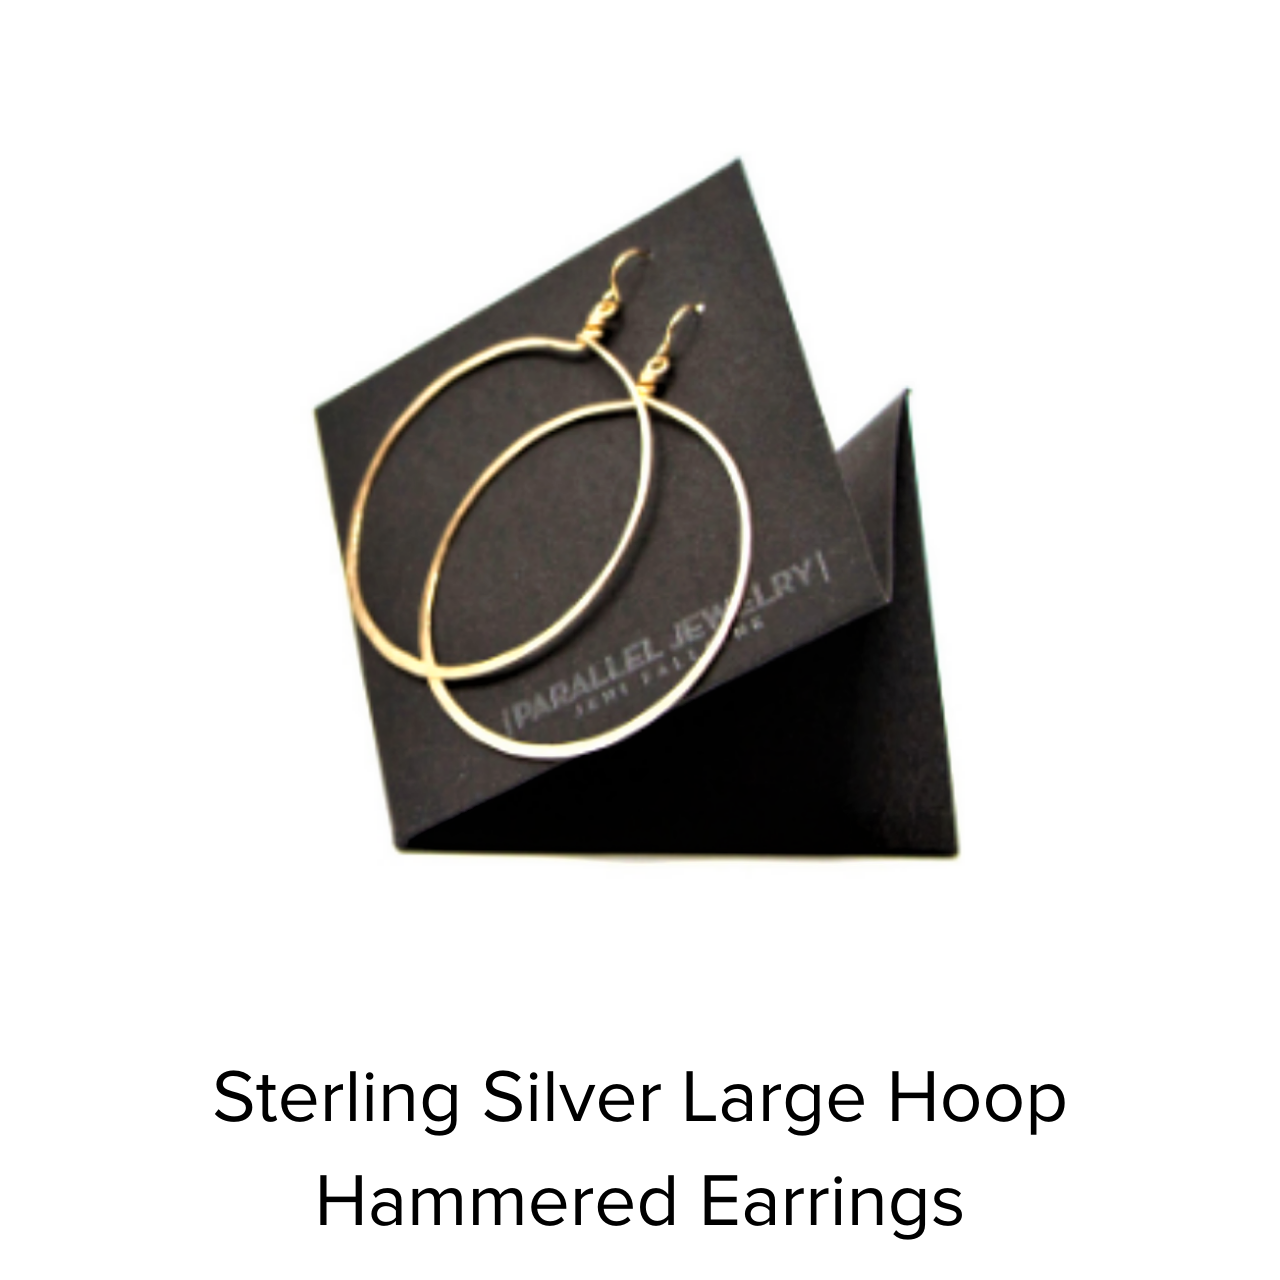 Parallel Sterling Silver Hammered Earrings